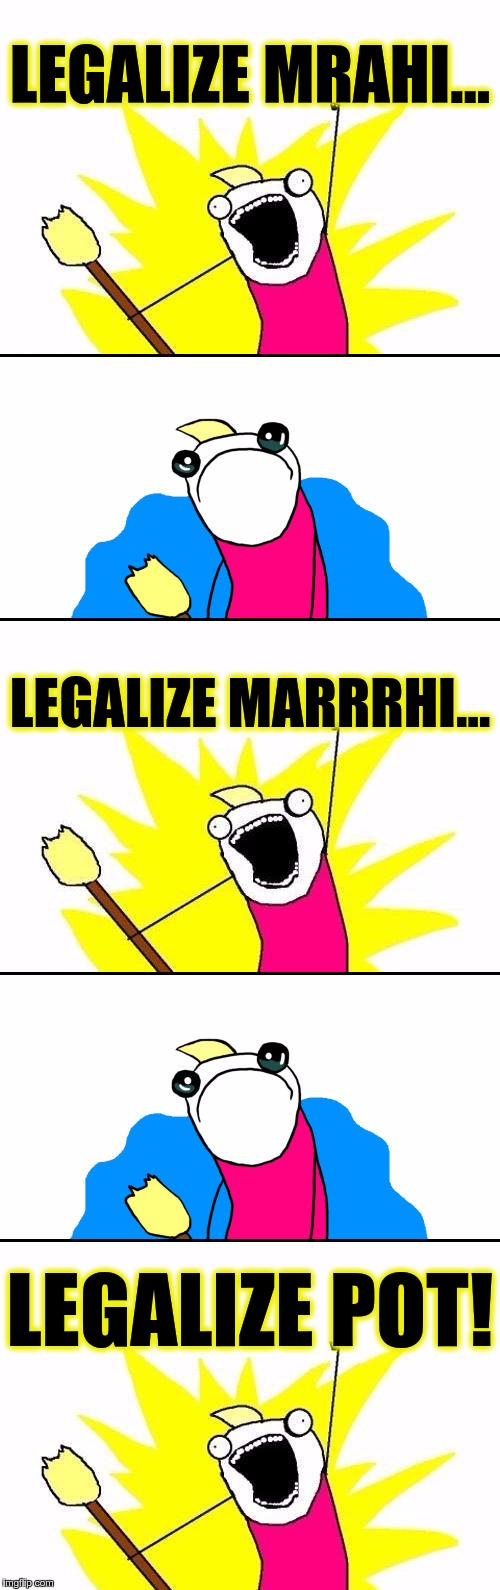 NEVER GIVE UP TRYING | LEGALIZE MRAHI… LEGALIZE MARRRHI… LEGALIZE POT! | image tagged in memes,funny,never give up,trying,spelling | made w/ Imgflip meme maker